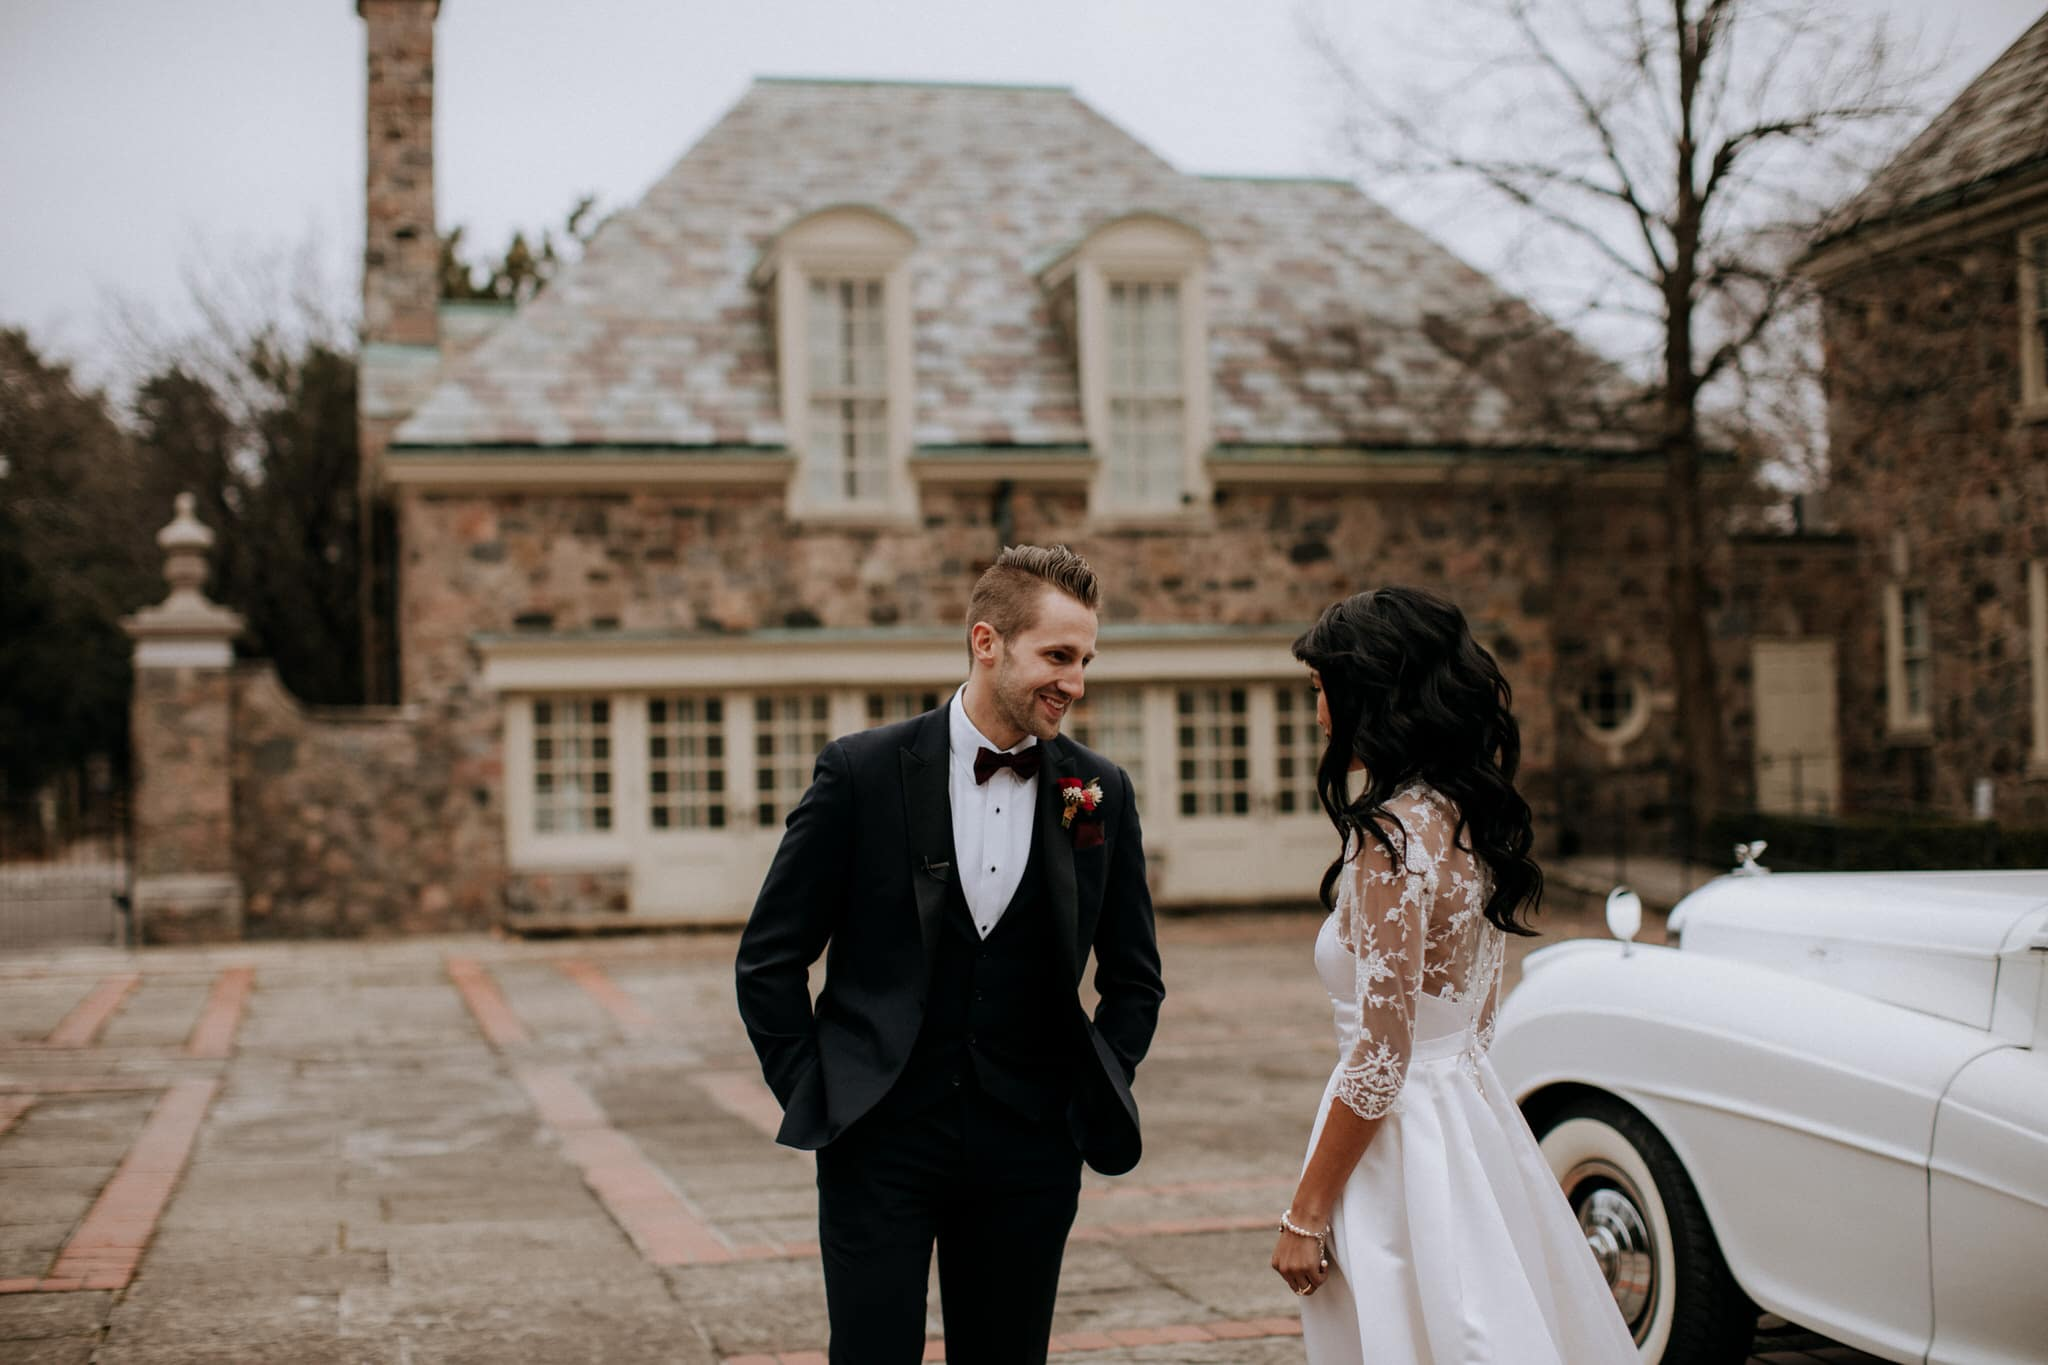 Bride and groom first look at Graydon Hall Manor Wedding in Toronto